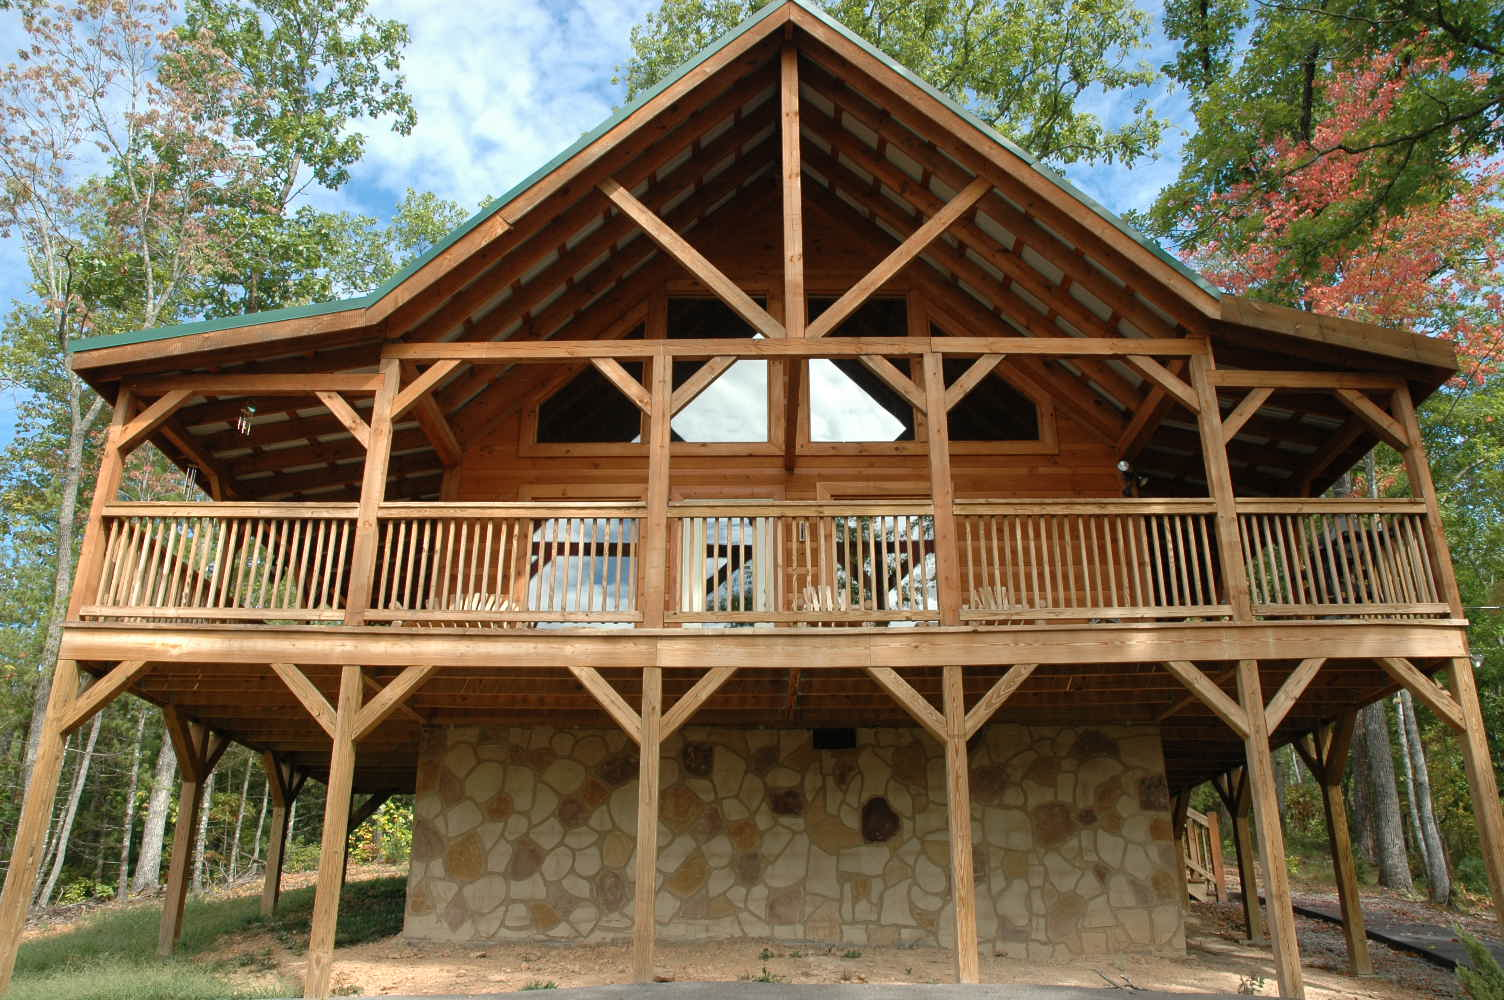 Smoky mountain log cabins archives pigeon forge cabins for Gatlinburg tn log cabin rentals